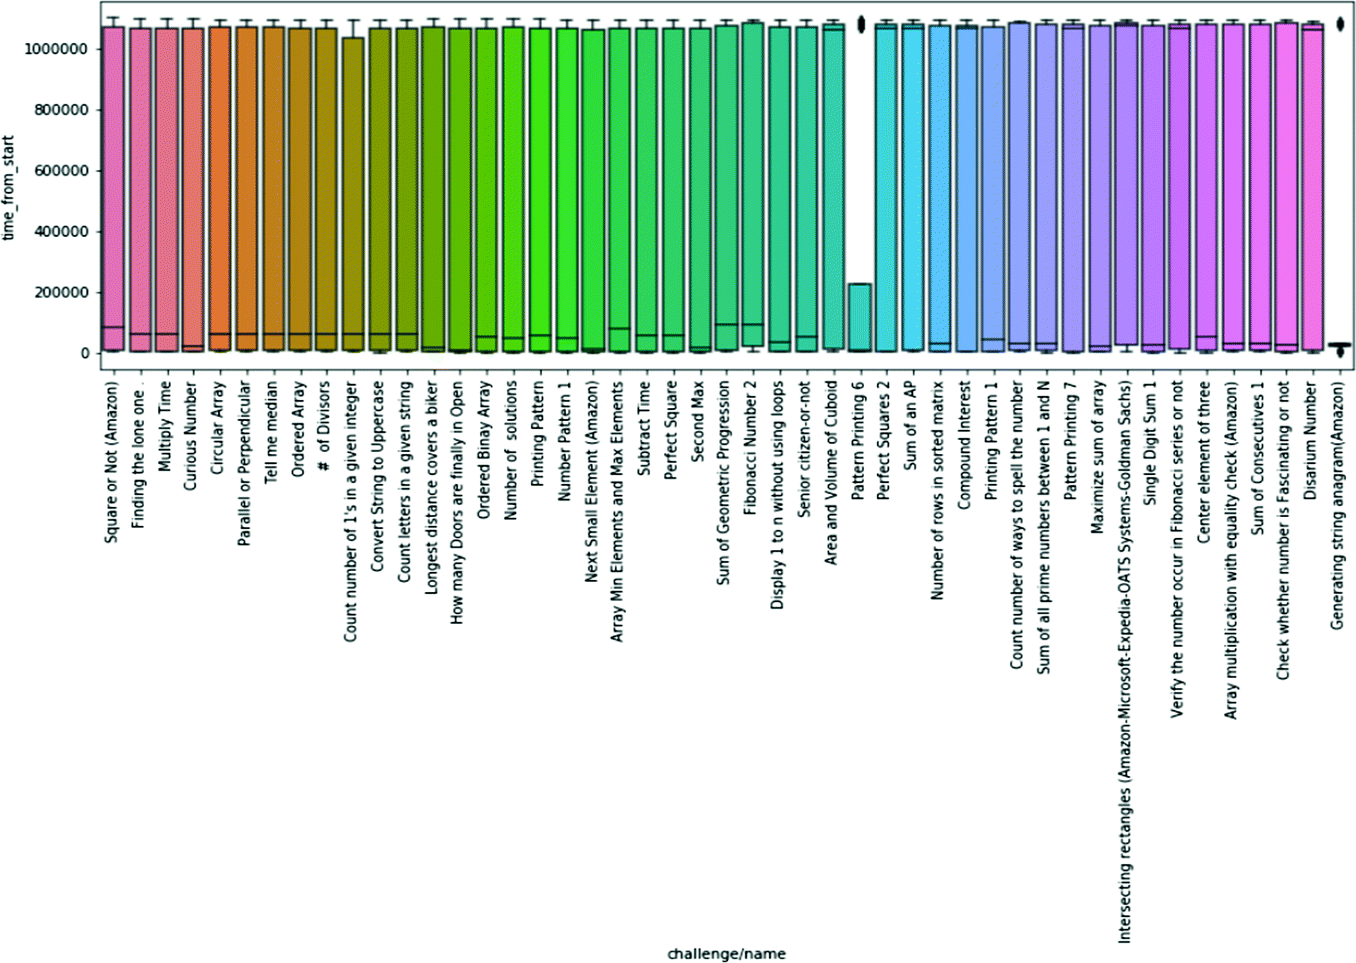 Classifying Difficulty Levels of Programming Questions on HackerRank